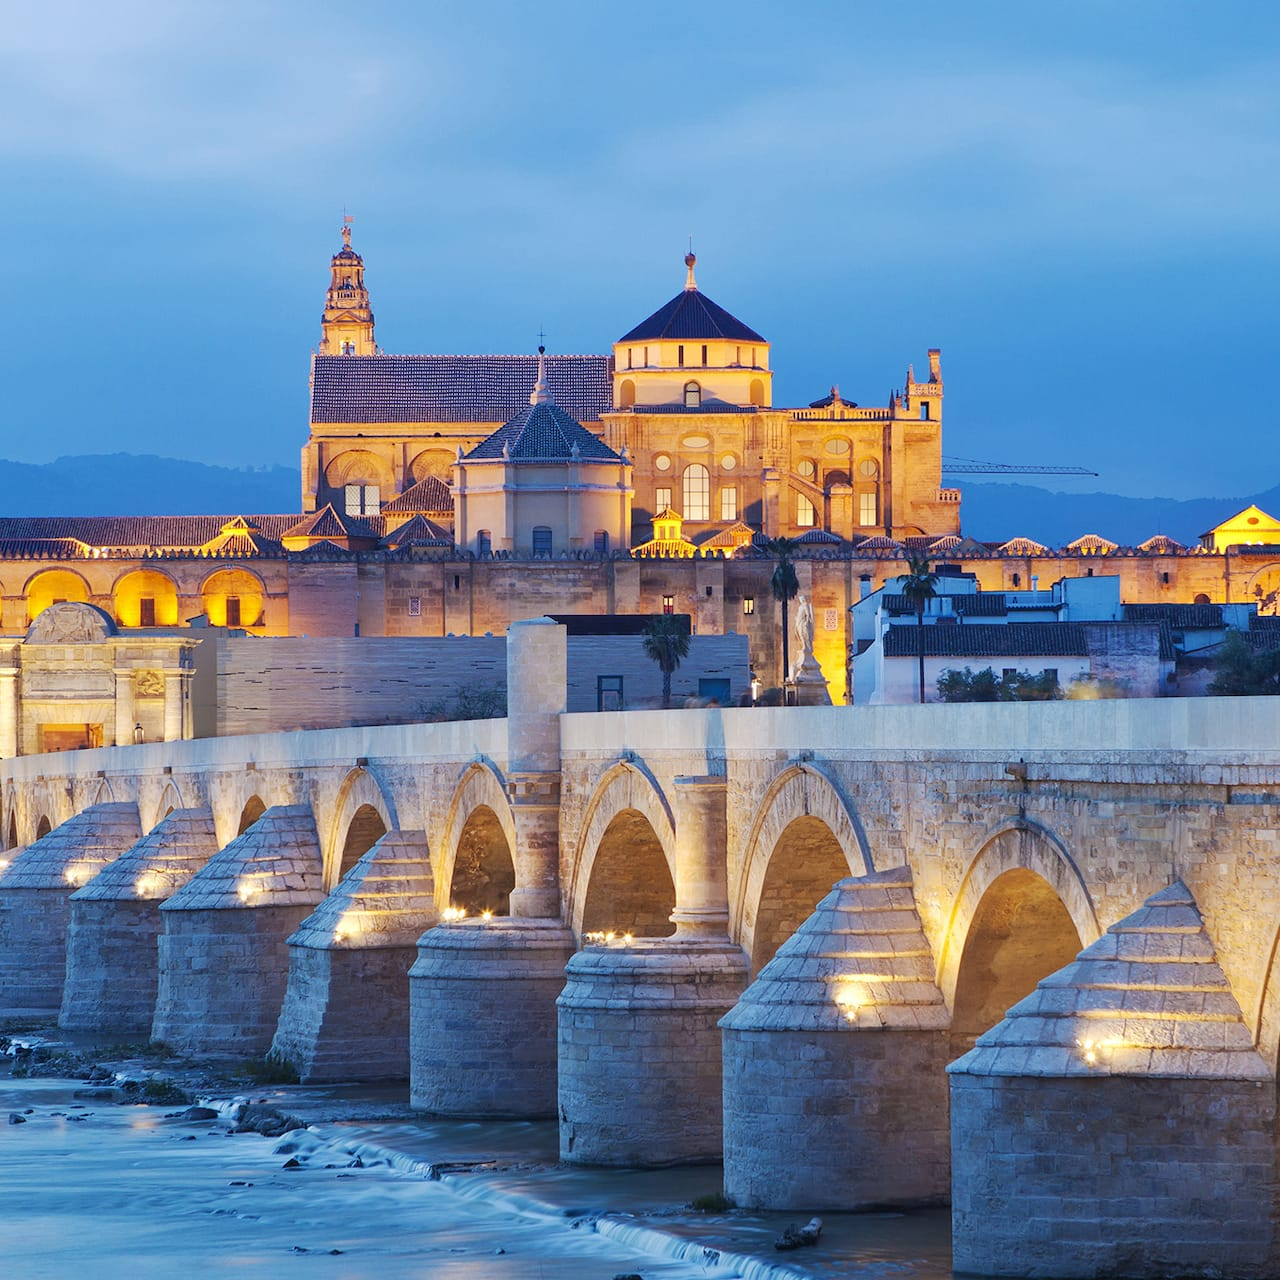 The Great Mosque of Córdoba at sunset